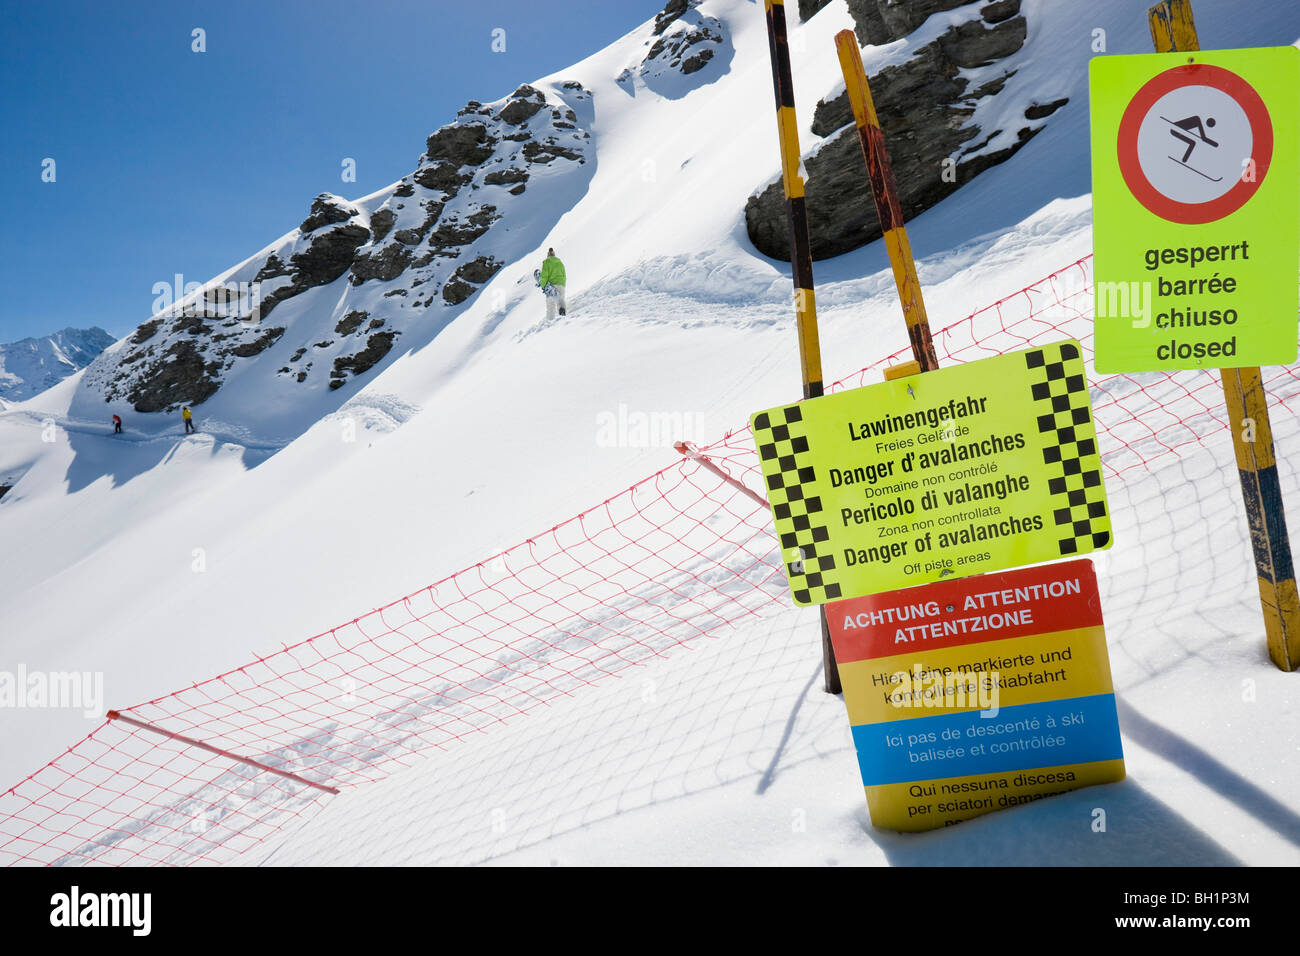 Domaine de Freeride, Zinal, barriers and avalanche warning signs, canton Valais, Wallis, Switzerland, Alps, MR - Stock Image